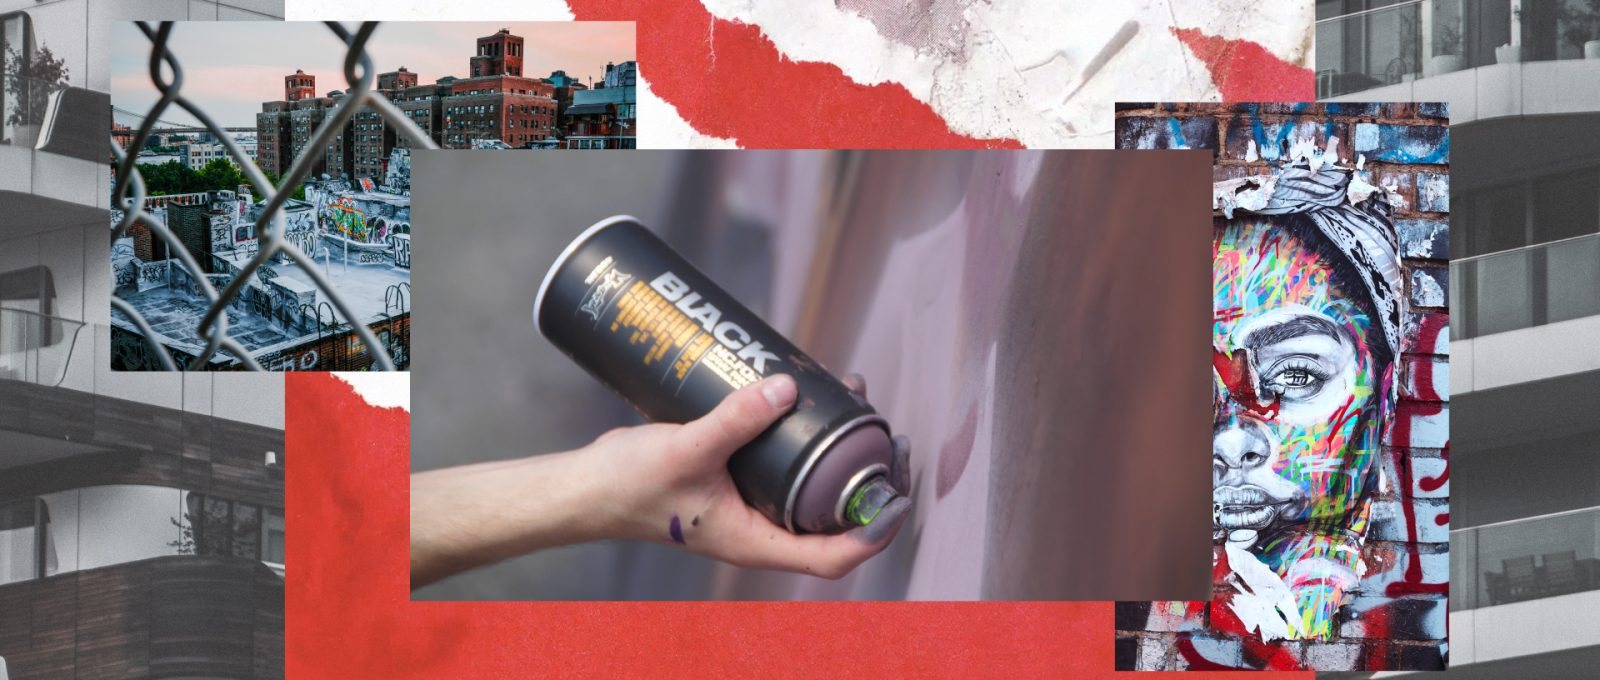 Here we are with PLUG-Mi, the first Italian event dedicated to urban culture experience